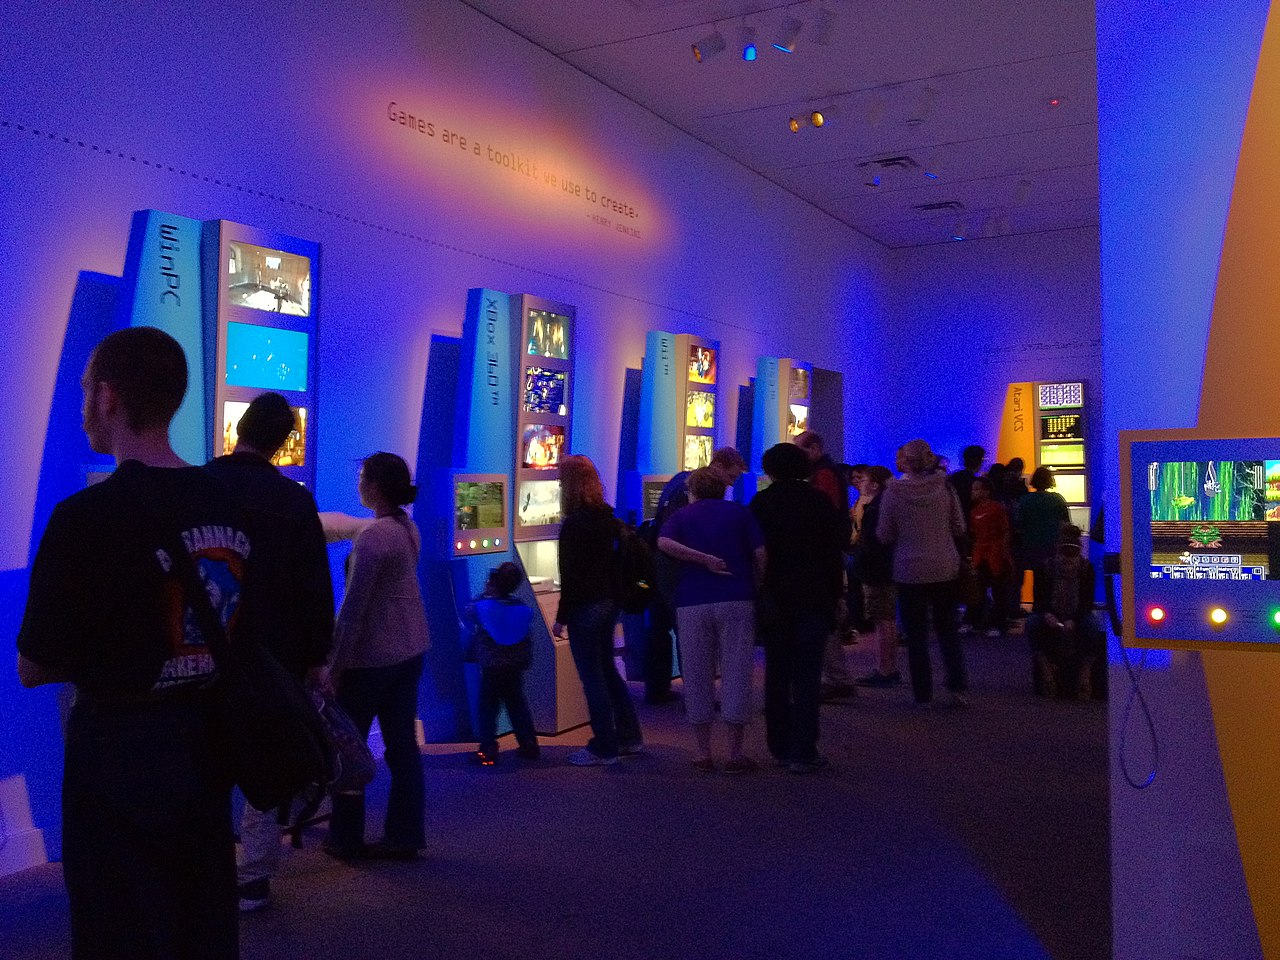 1280px-The_art_of_video_games_exhibition